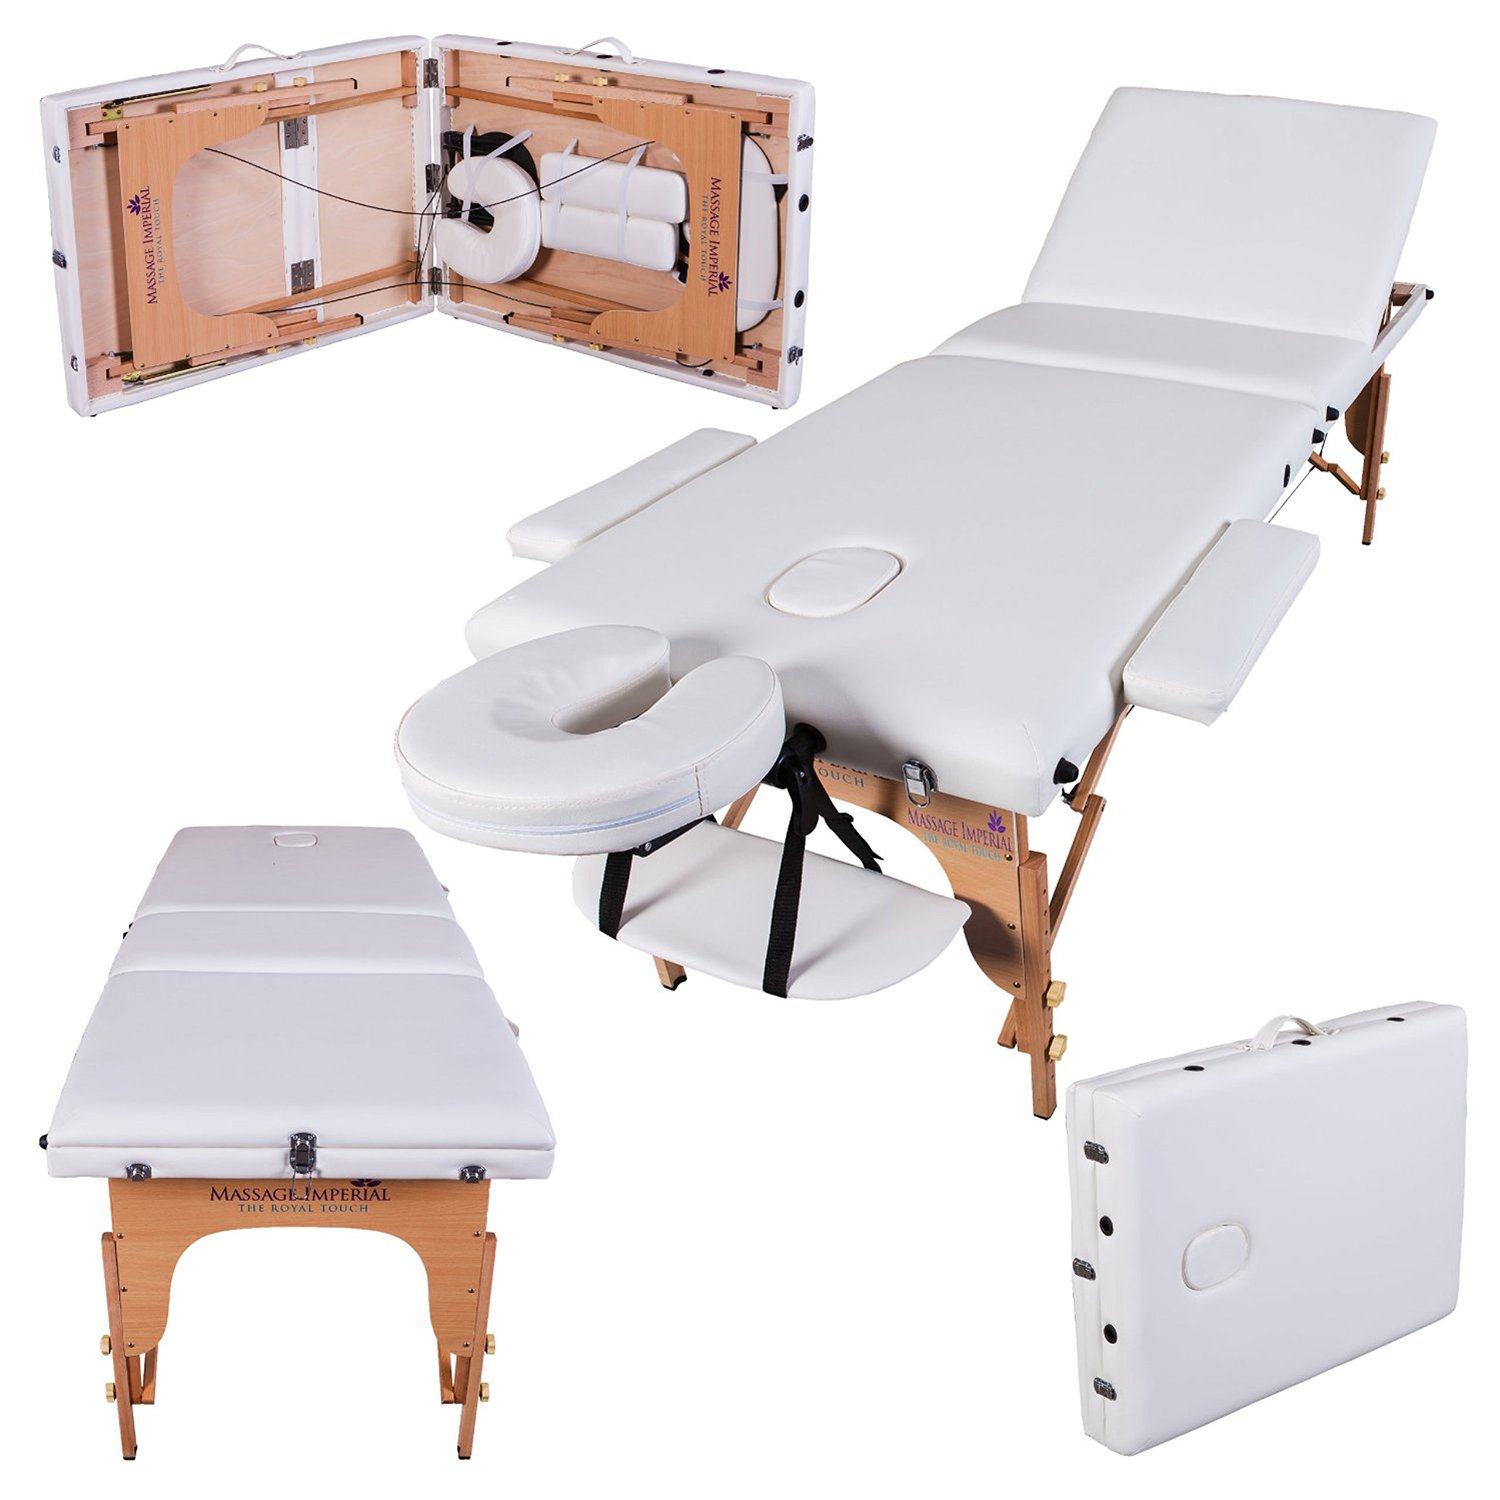 Acheter table pliante table pliable table rabattable table - Tables de massage pliante ...